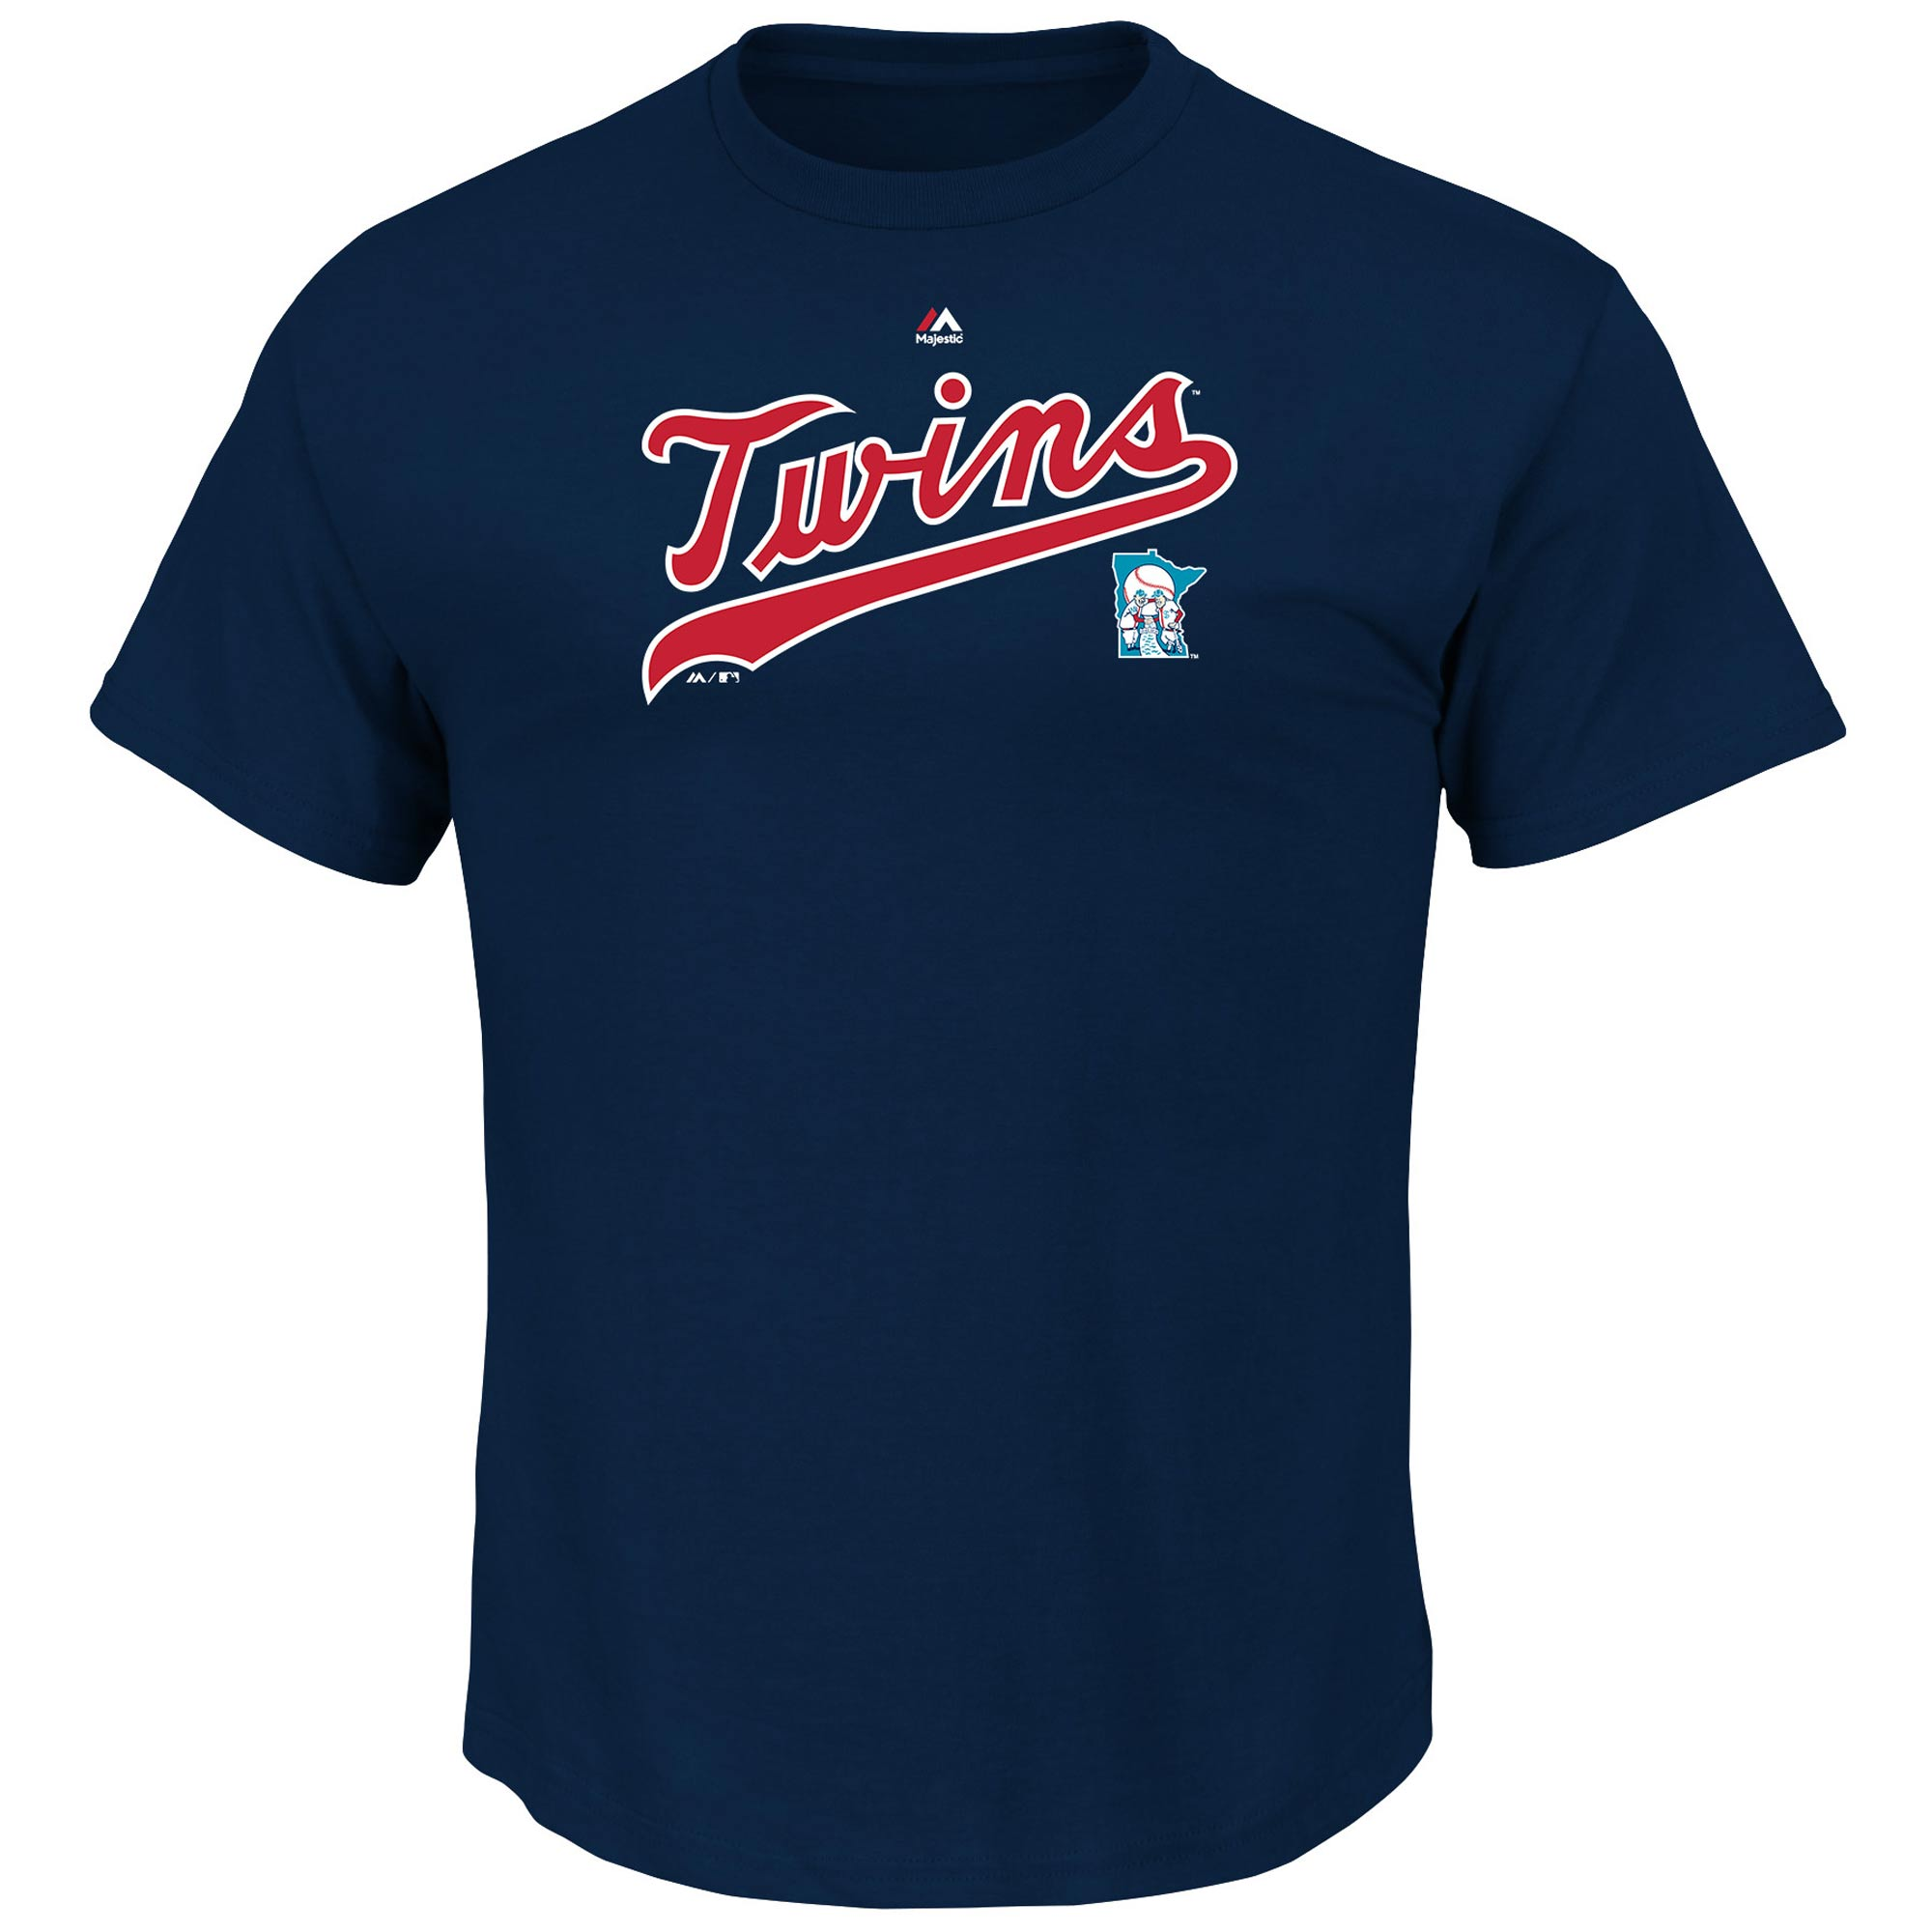 Minnesota Twins Majestic Cooperstown Series Sweep T-Shirt - Navy